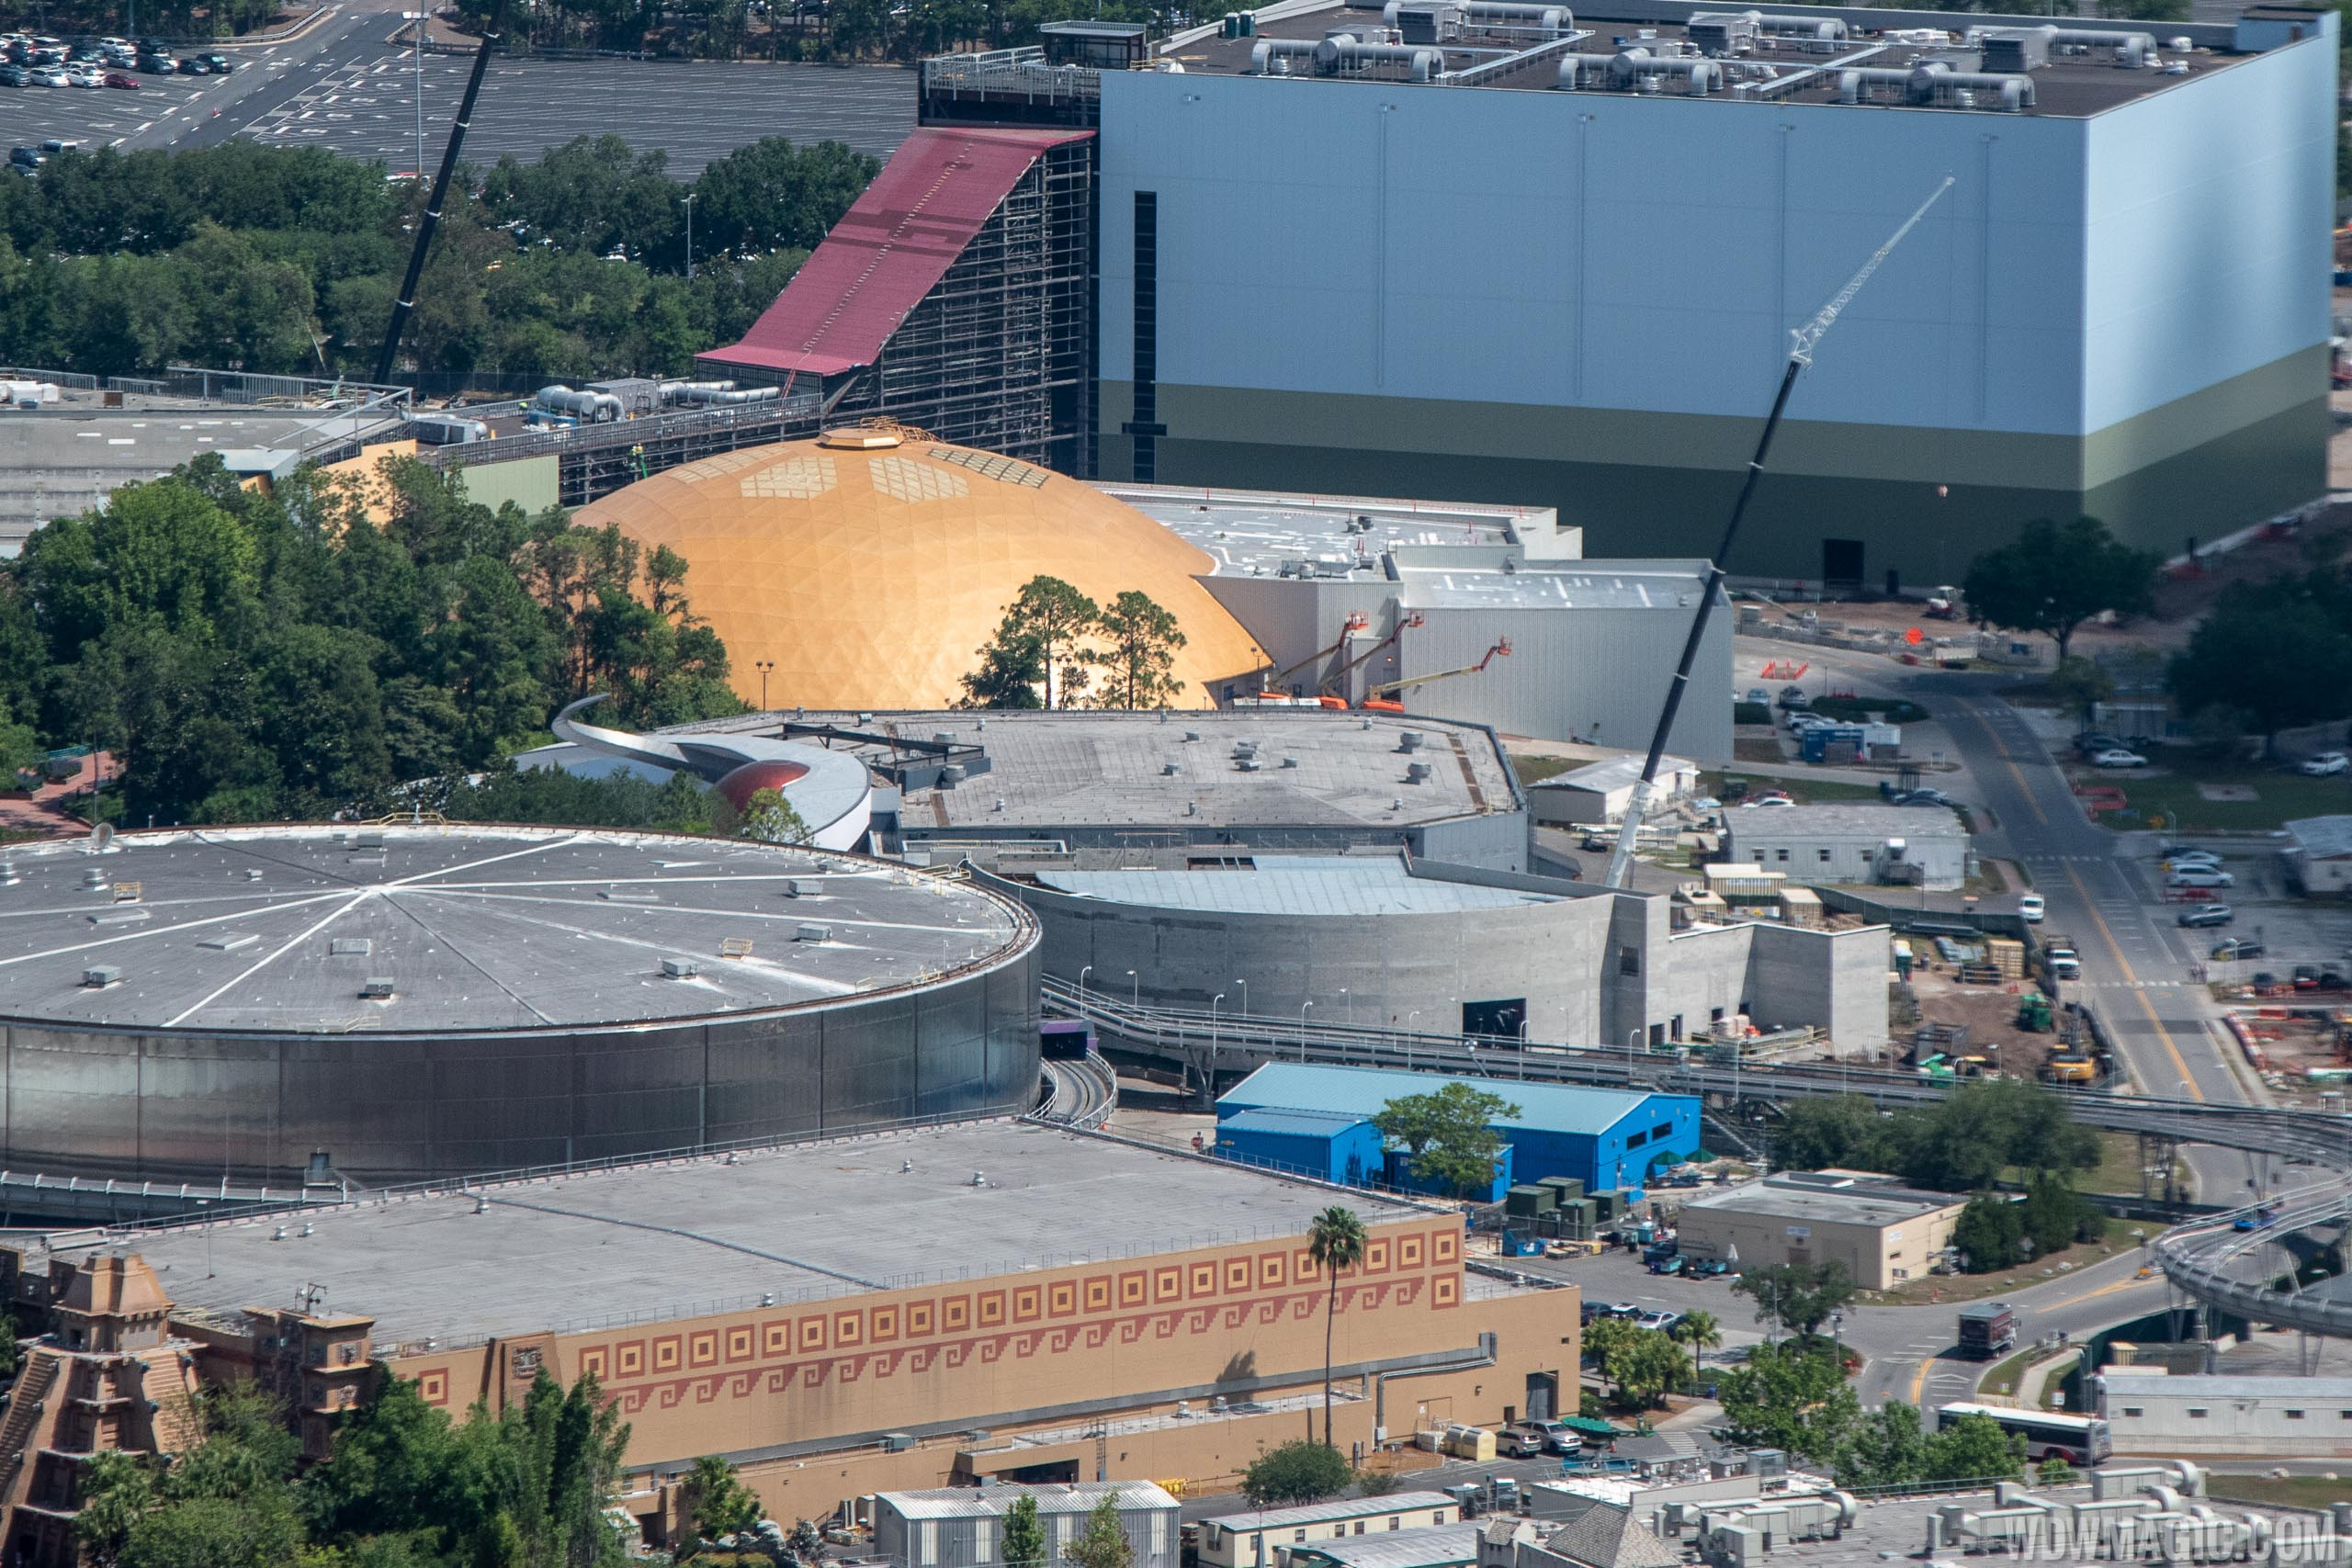 Epcot Space Restaurant construction - May 2019